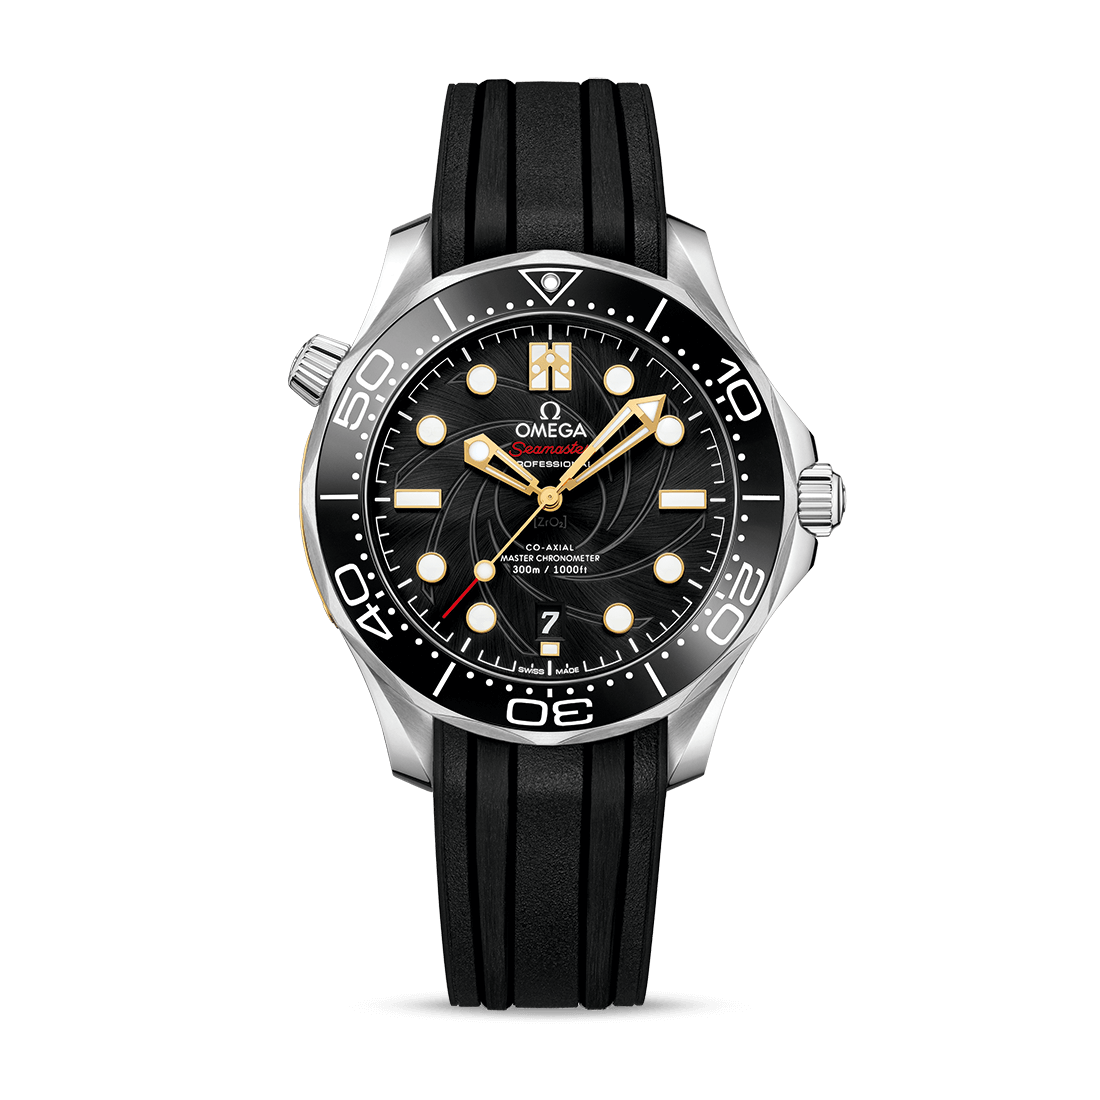 Pre-owned Omega Seamaster Diver 300M